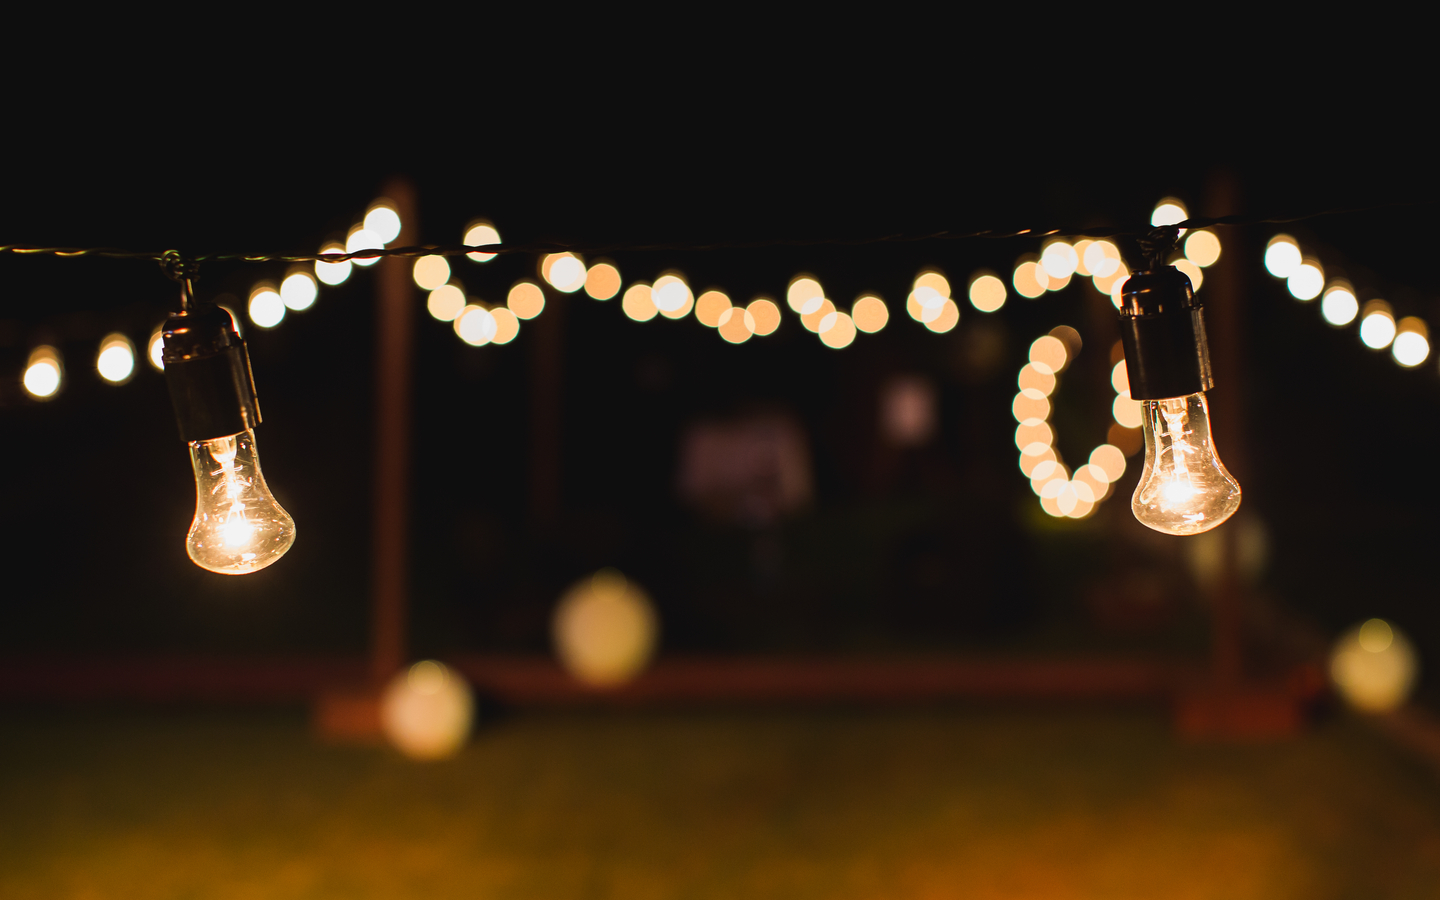 Mood lighting is a great way to create the right atmosphere in the luxury resort in your backyard